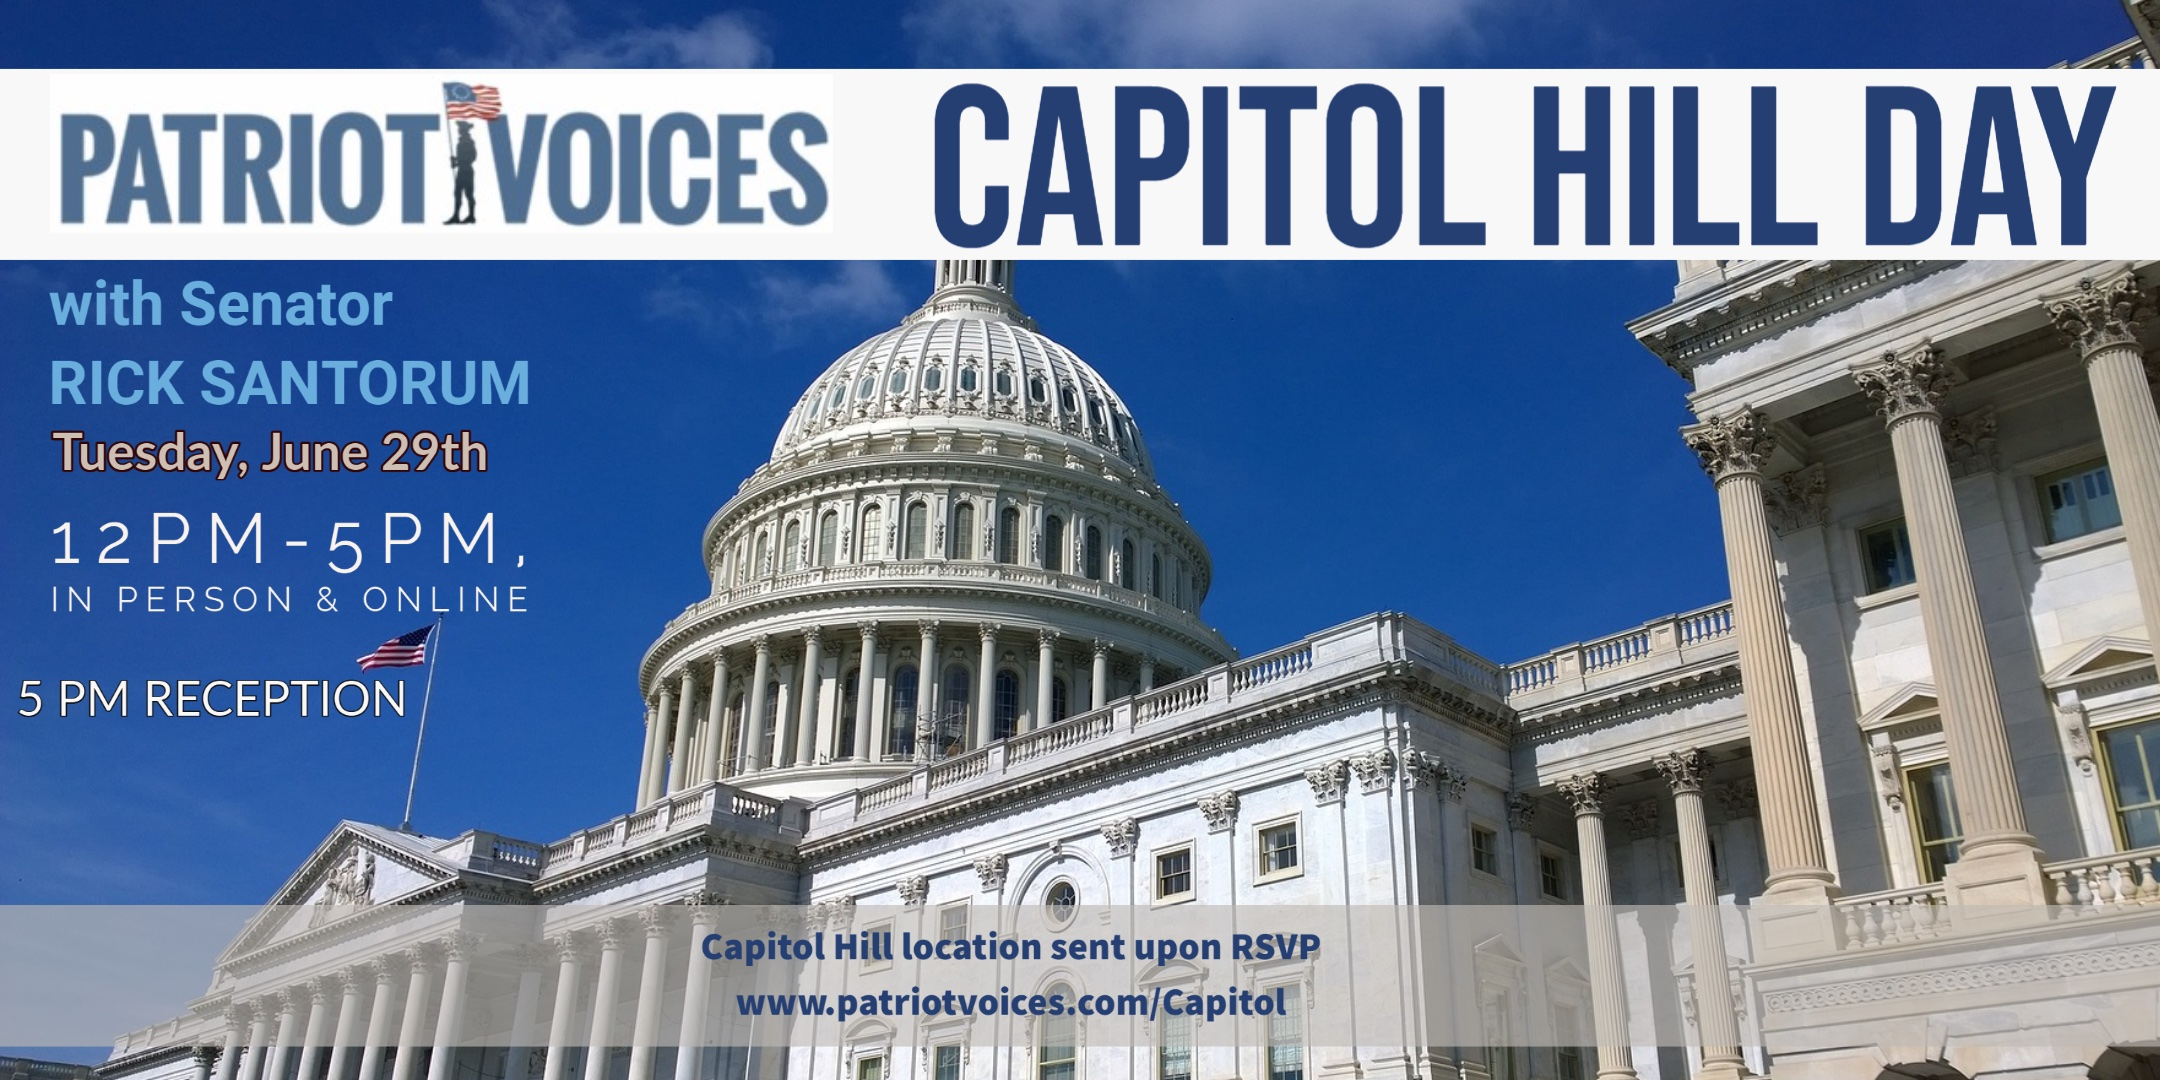 PV_Capitol_Hill_Day_graphic_for_website_(1)_copy_2.jpg